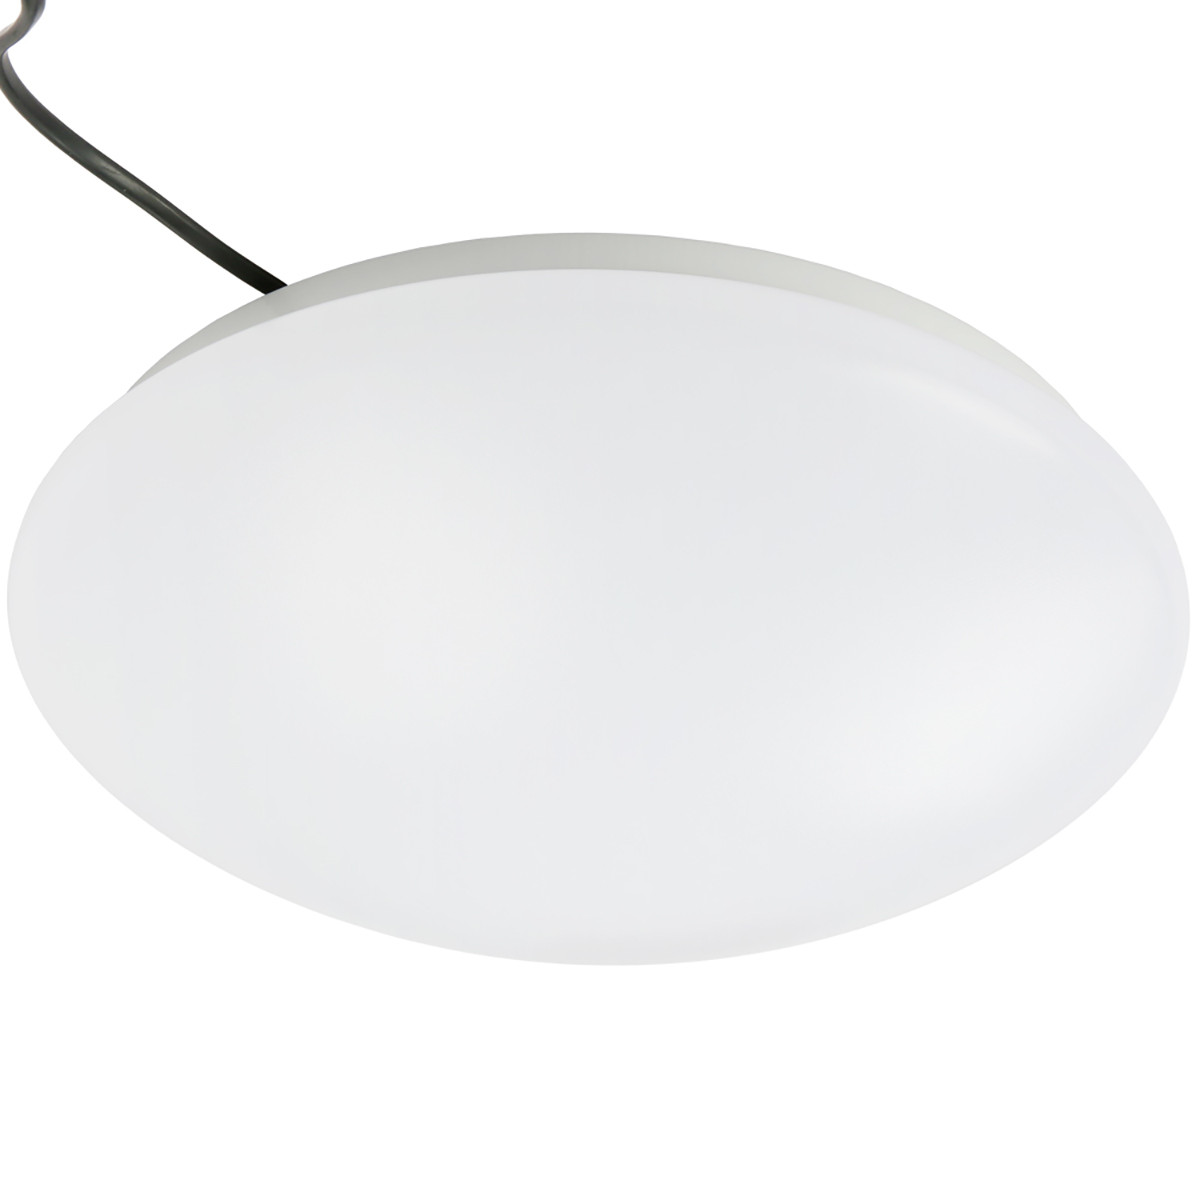 24W 14.96 inch Modern LED Flush Mount Ceiling Light Fixture for Any Room Round Acrylic Shade White Finish Mushroom Shape and CCT changable with RF control